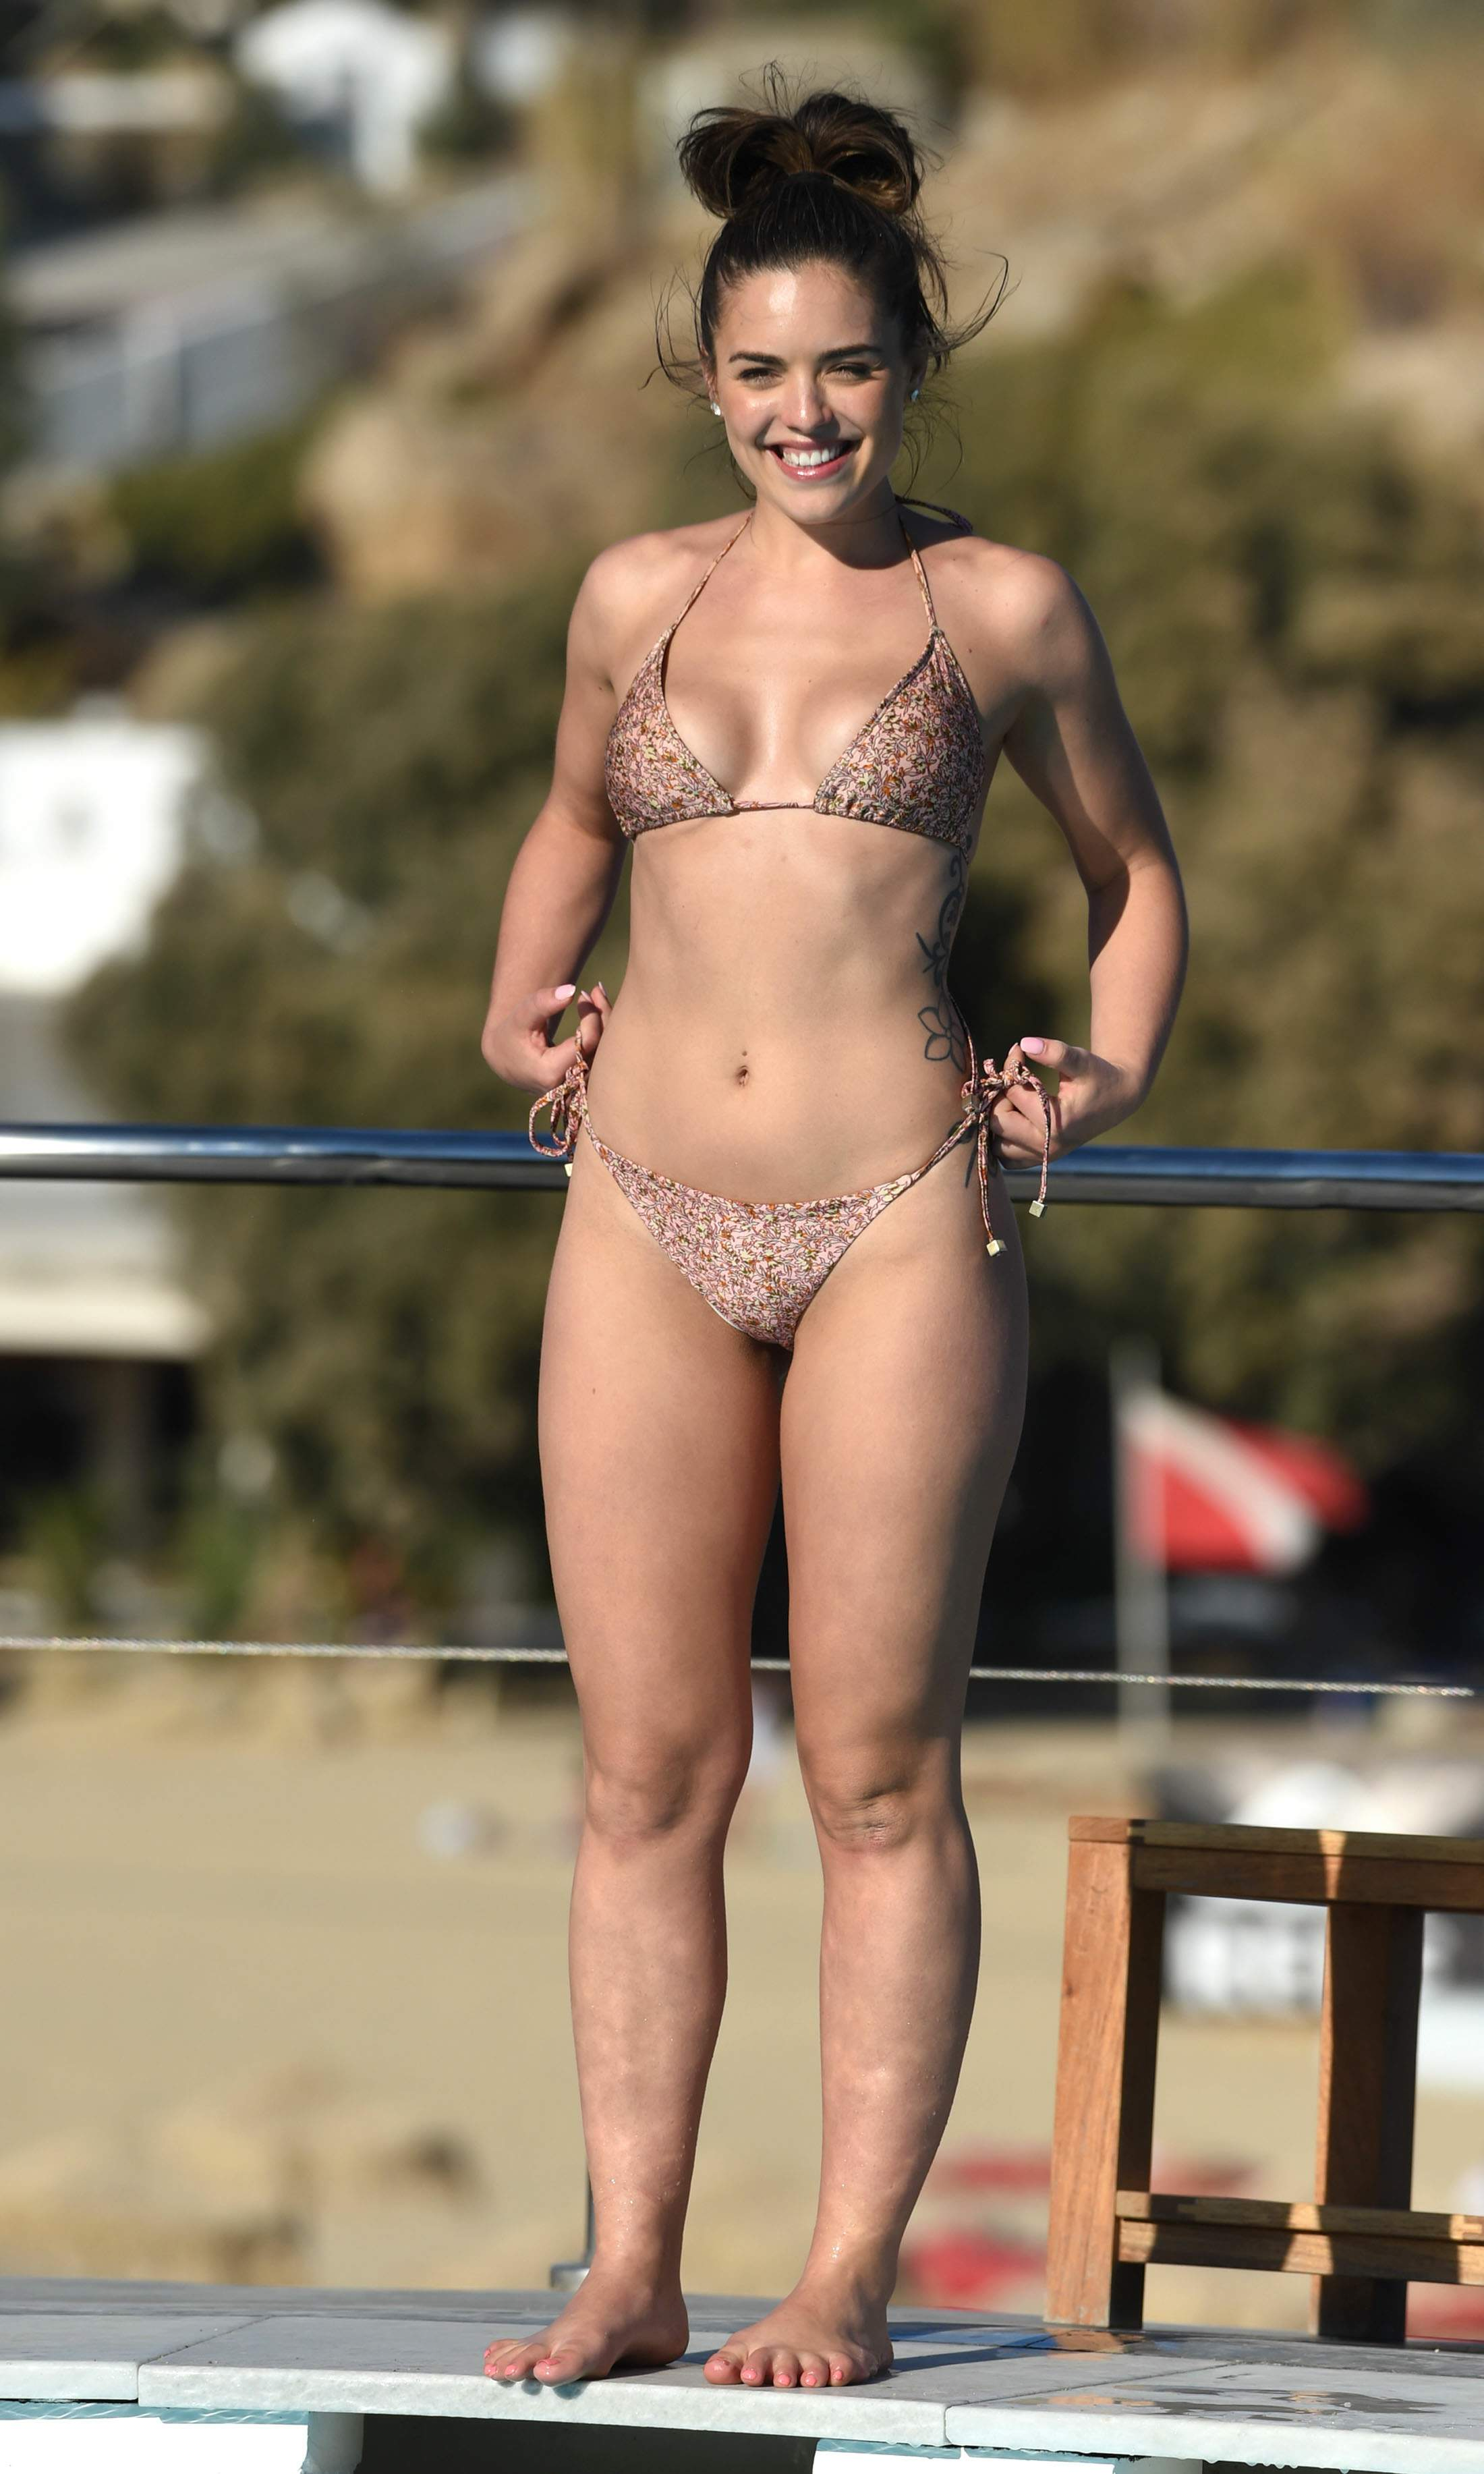 Phew! TV Actress Olympia Valance Booty Pics • Page 3